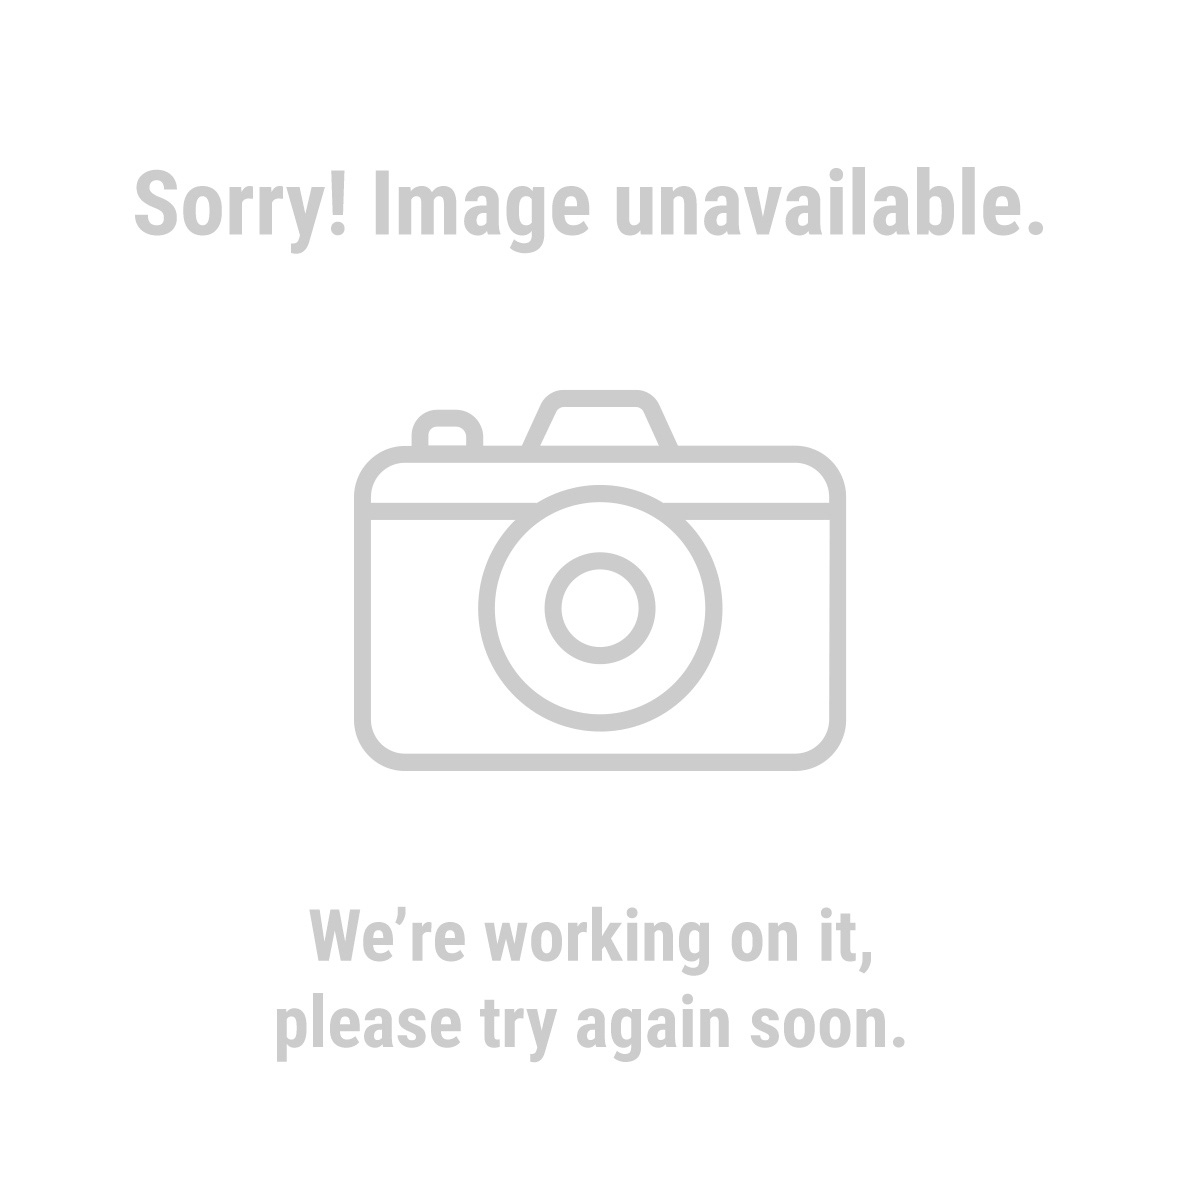 Warrior 60230 3 Piece 7 in. 36 Grit Resin Fiber Sanding Discs